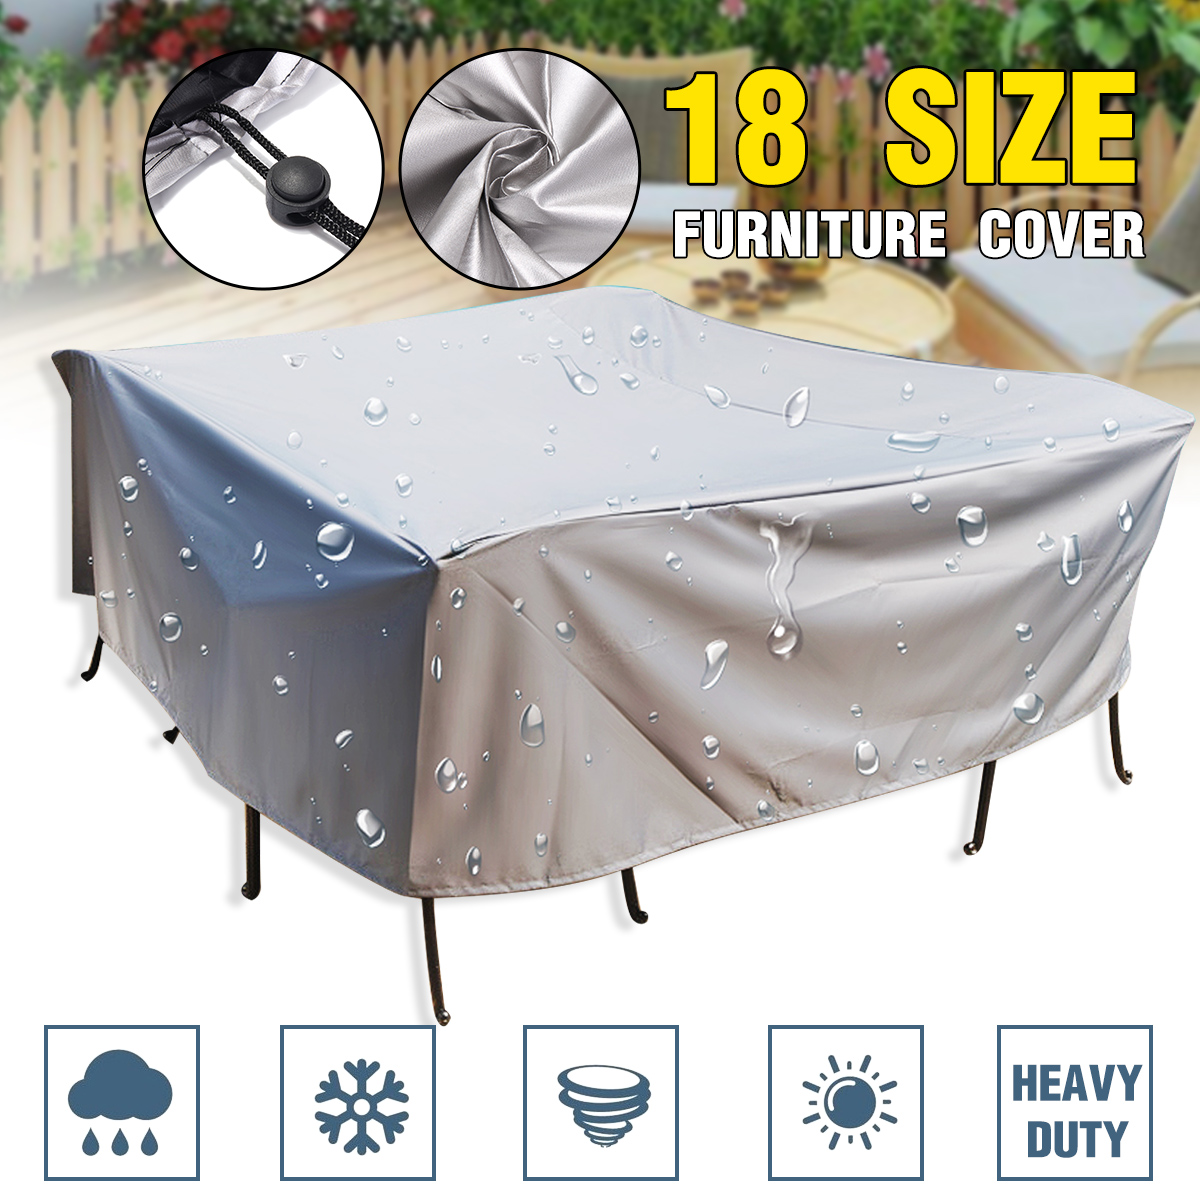 18Size Outdoor Cover Waterproof Furniture Cover Sofa Chair Table Cover Garden Patio Beach Protector Rain Snow Dust Covers